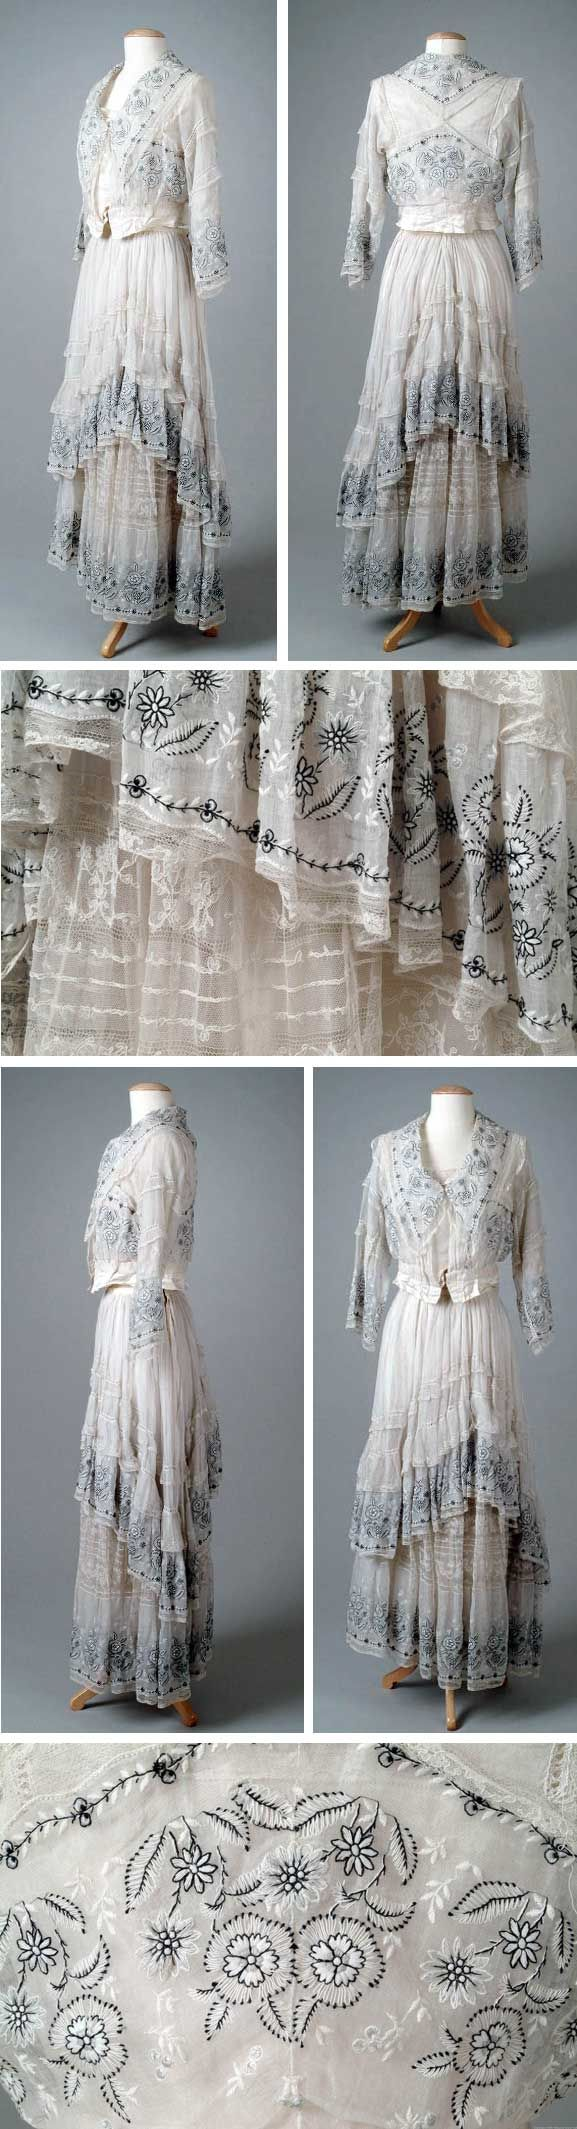 Two-piece summer dress, Lucile, 1915. White cotton organdy embroidered in black and white flowers. Skirt is trimmed in lace and bodice has a shawl collar. Via Meadow Brook Hall Historic Costume Collection, Oakland Univ.